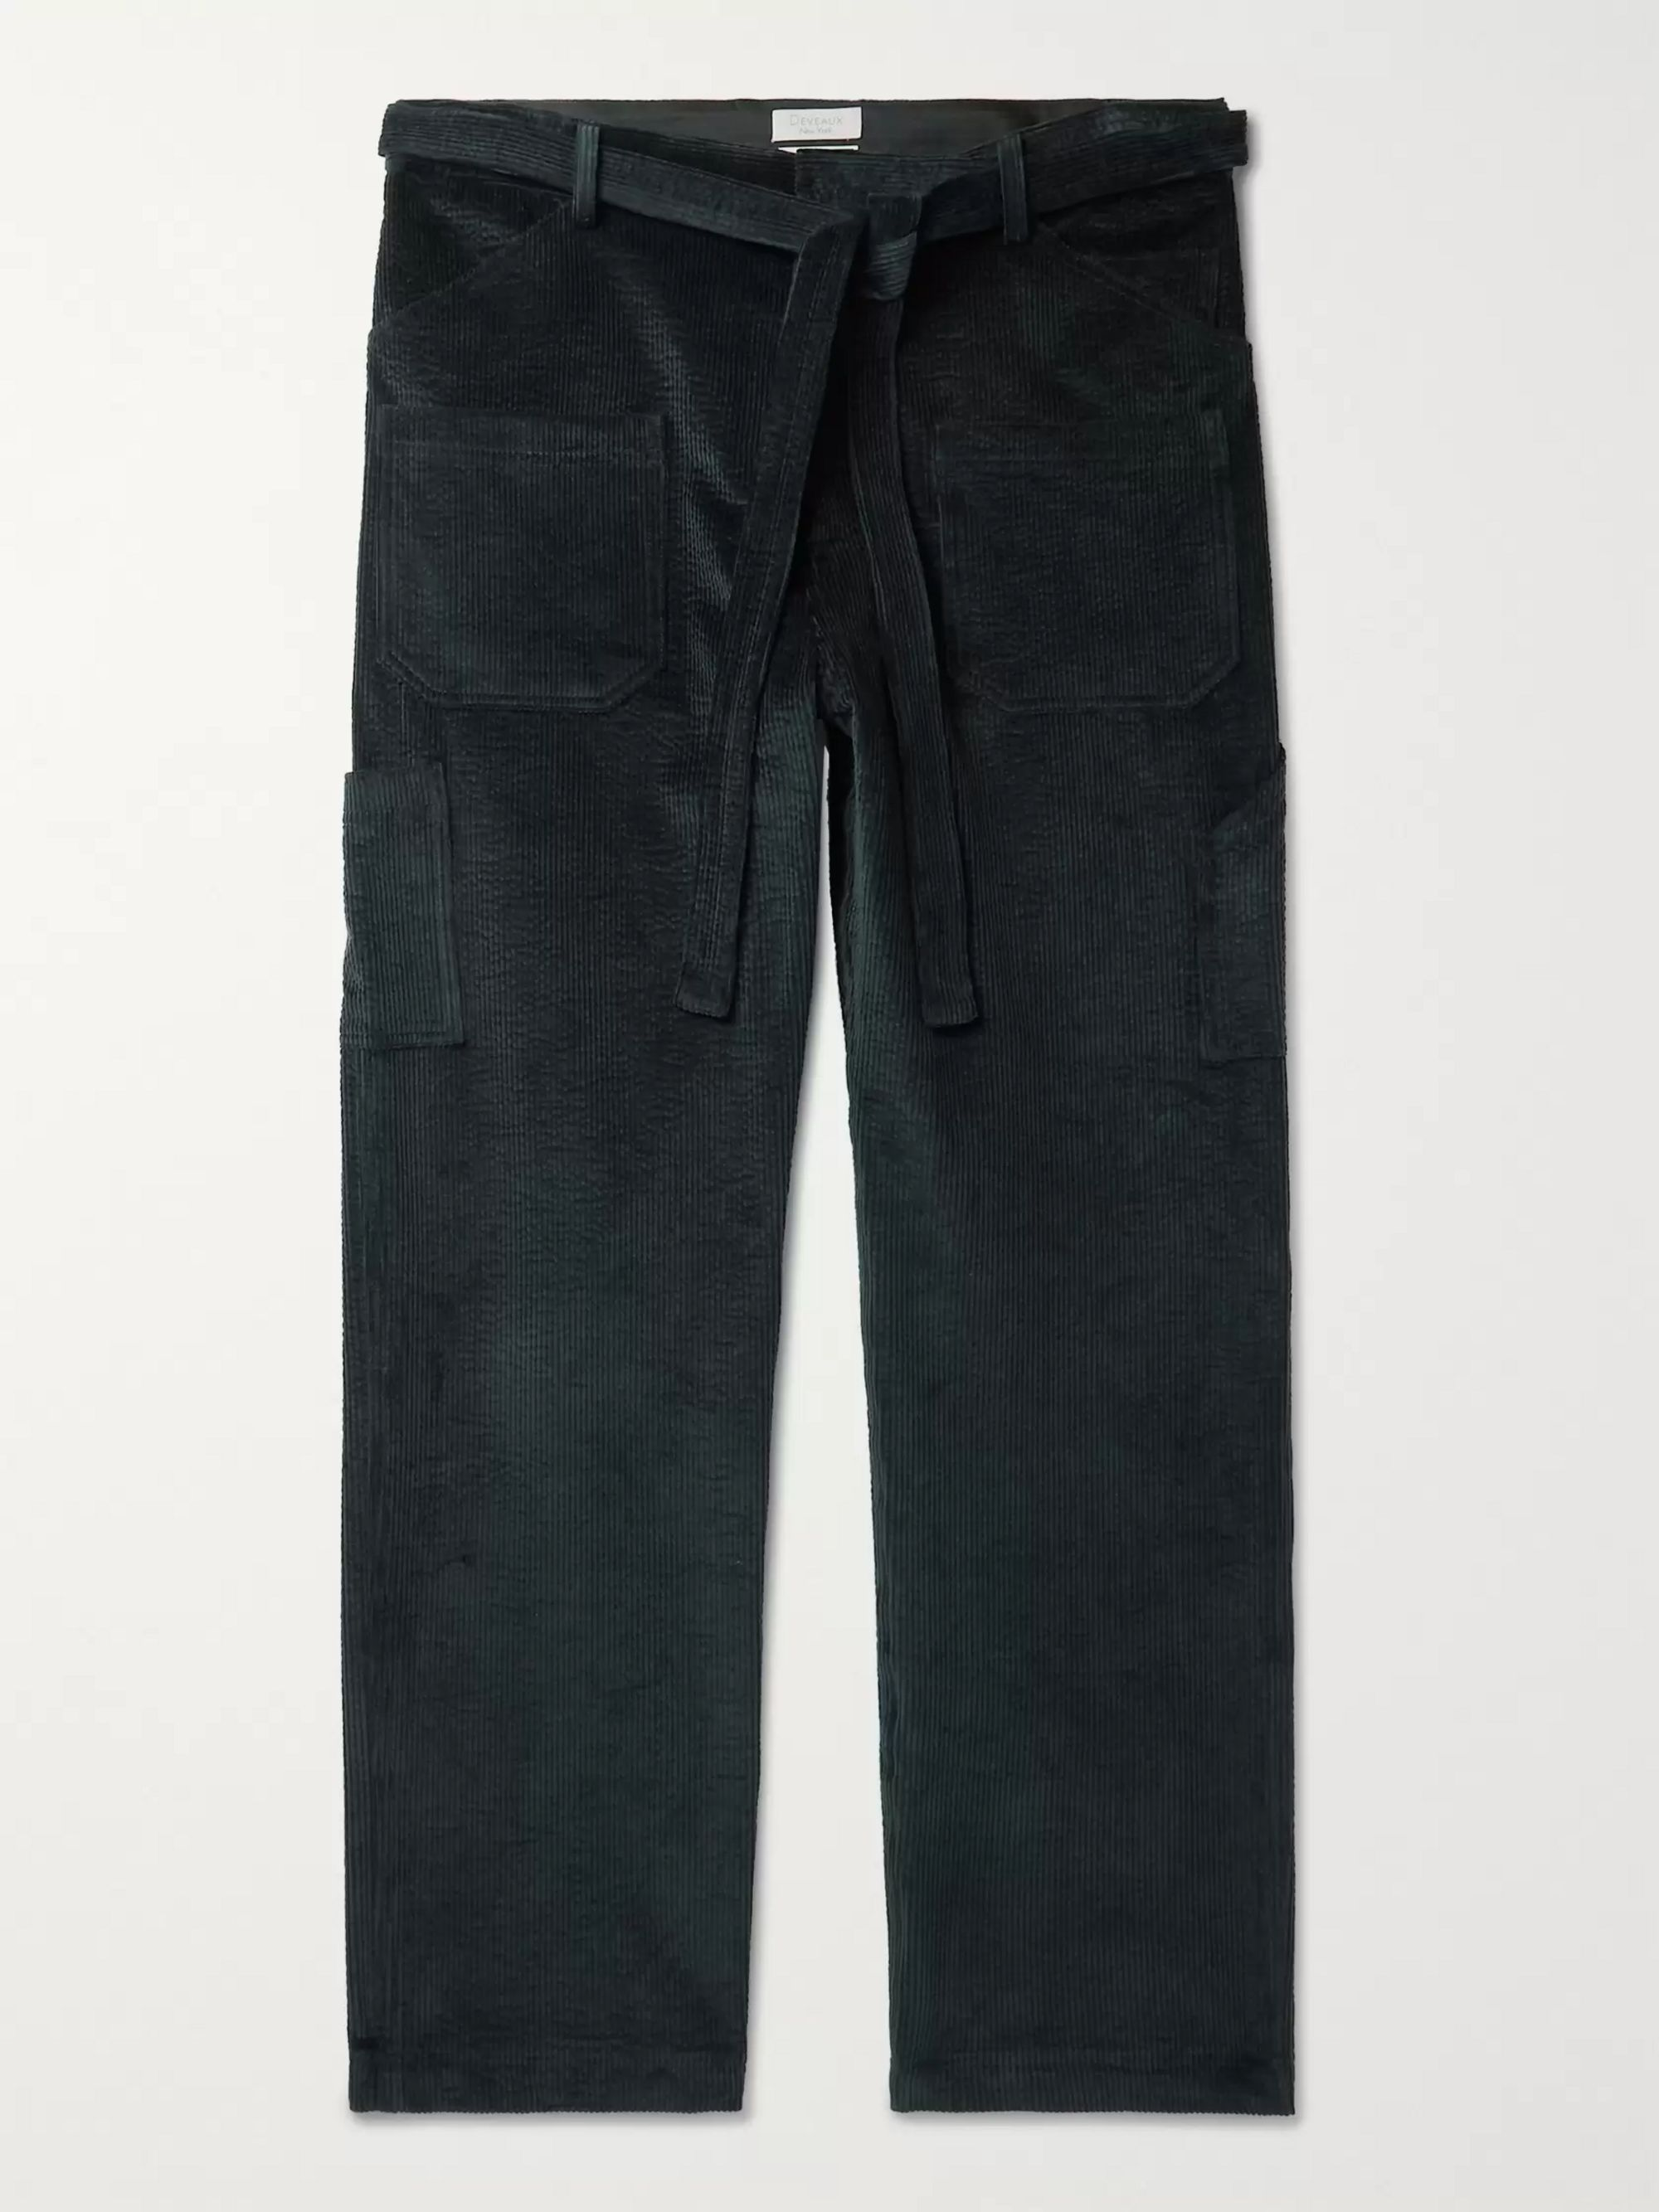 Deveaux Teal Cotton-Blend Corduroy Suit Trousers